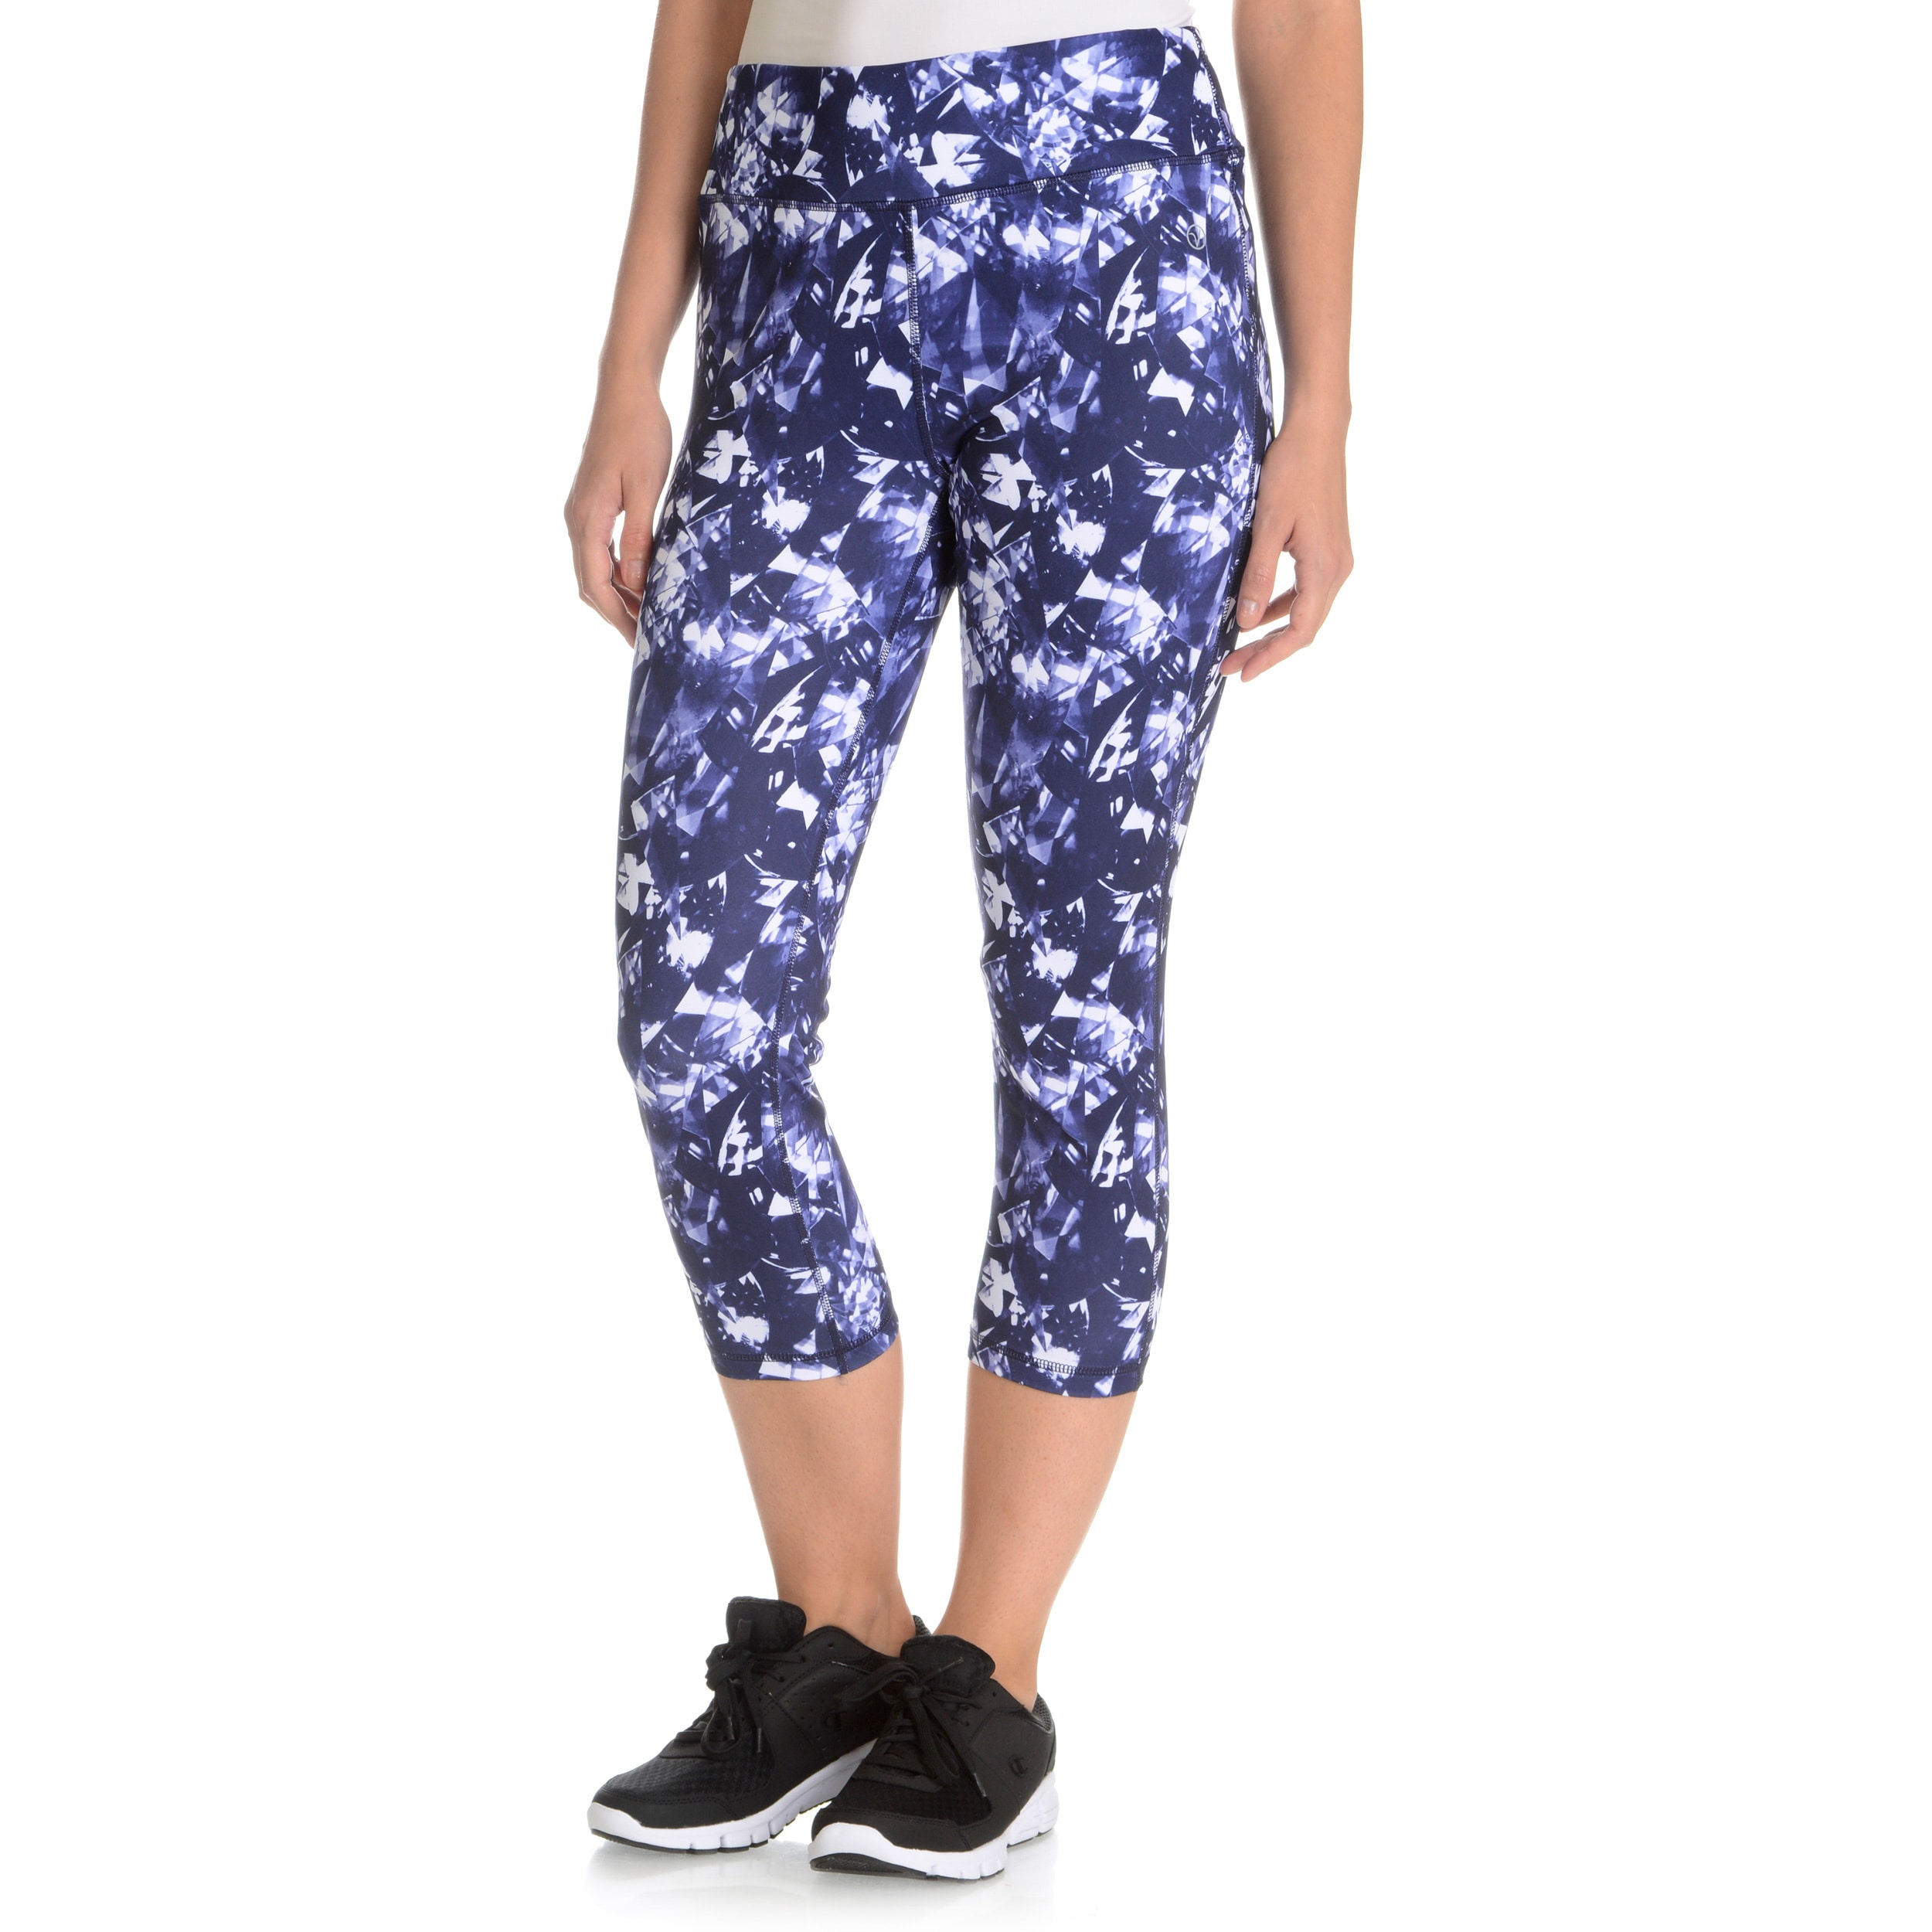 c6dcdc73d4 Shop Vogo Athletica Women's Printed Legging - Free Shipping On Orders Over  $45 - Overstock - 10606264